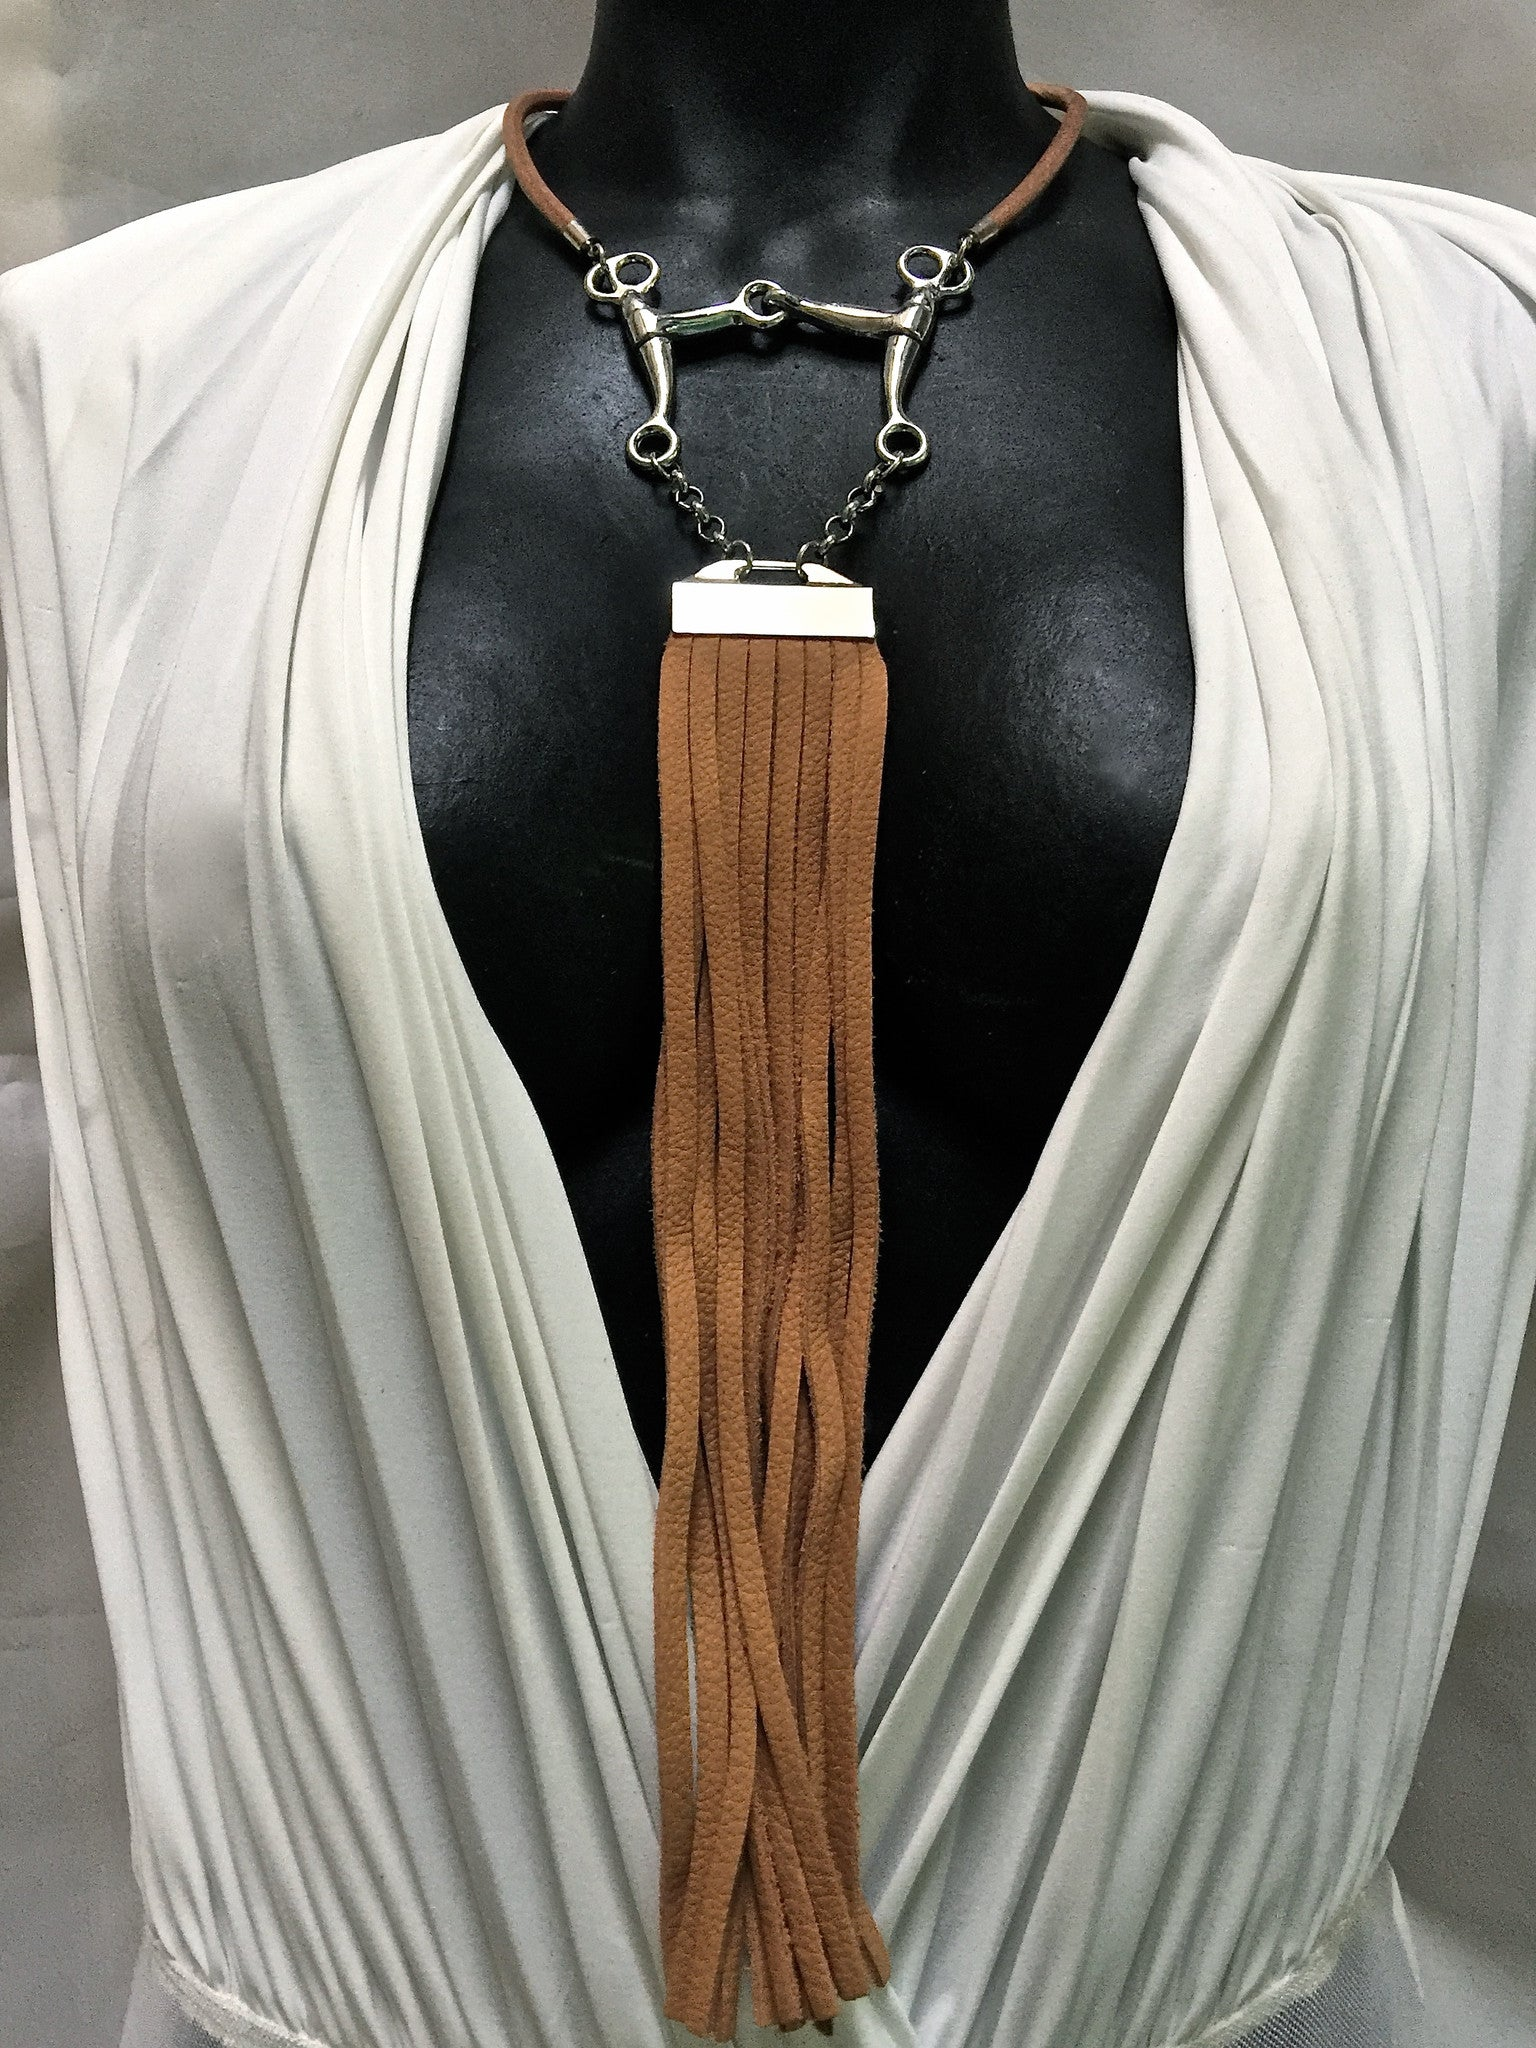 TAN LEATHER CHOKER NECKLACE WITH PELHAM HORSE BIT PENDANT AND LONG DEERSKIN LEATHER FRINGE by nyet jewelry.